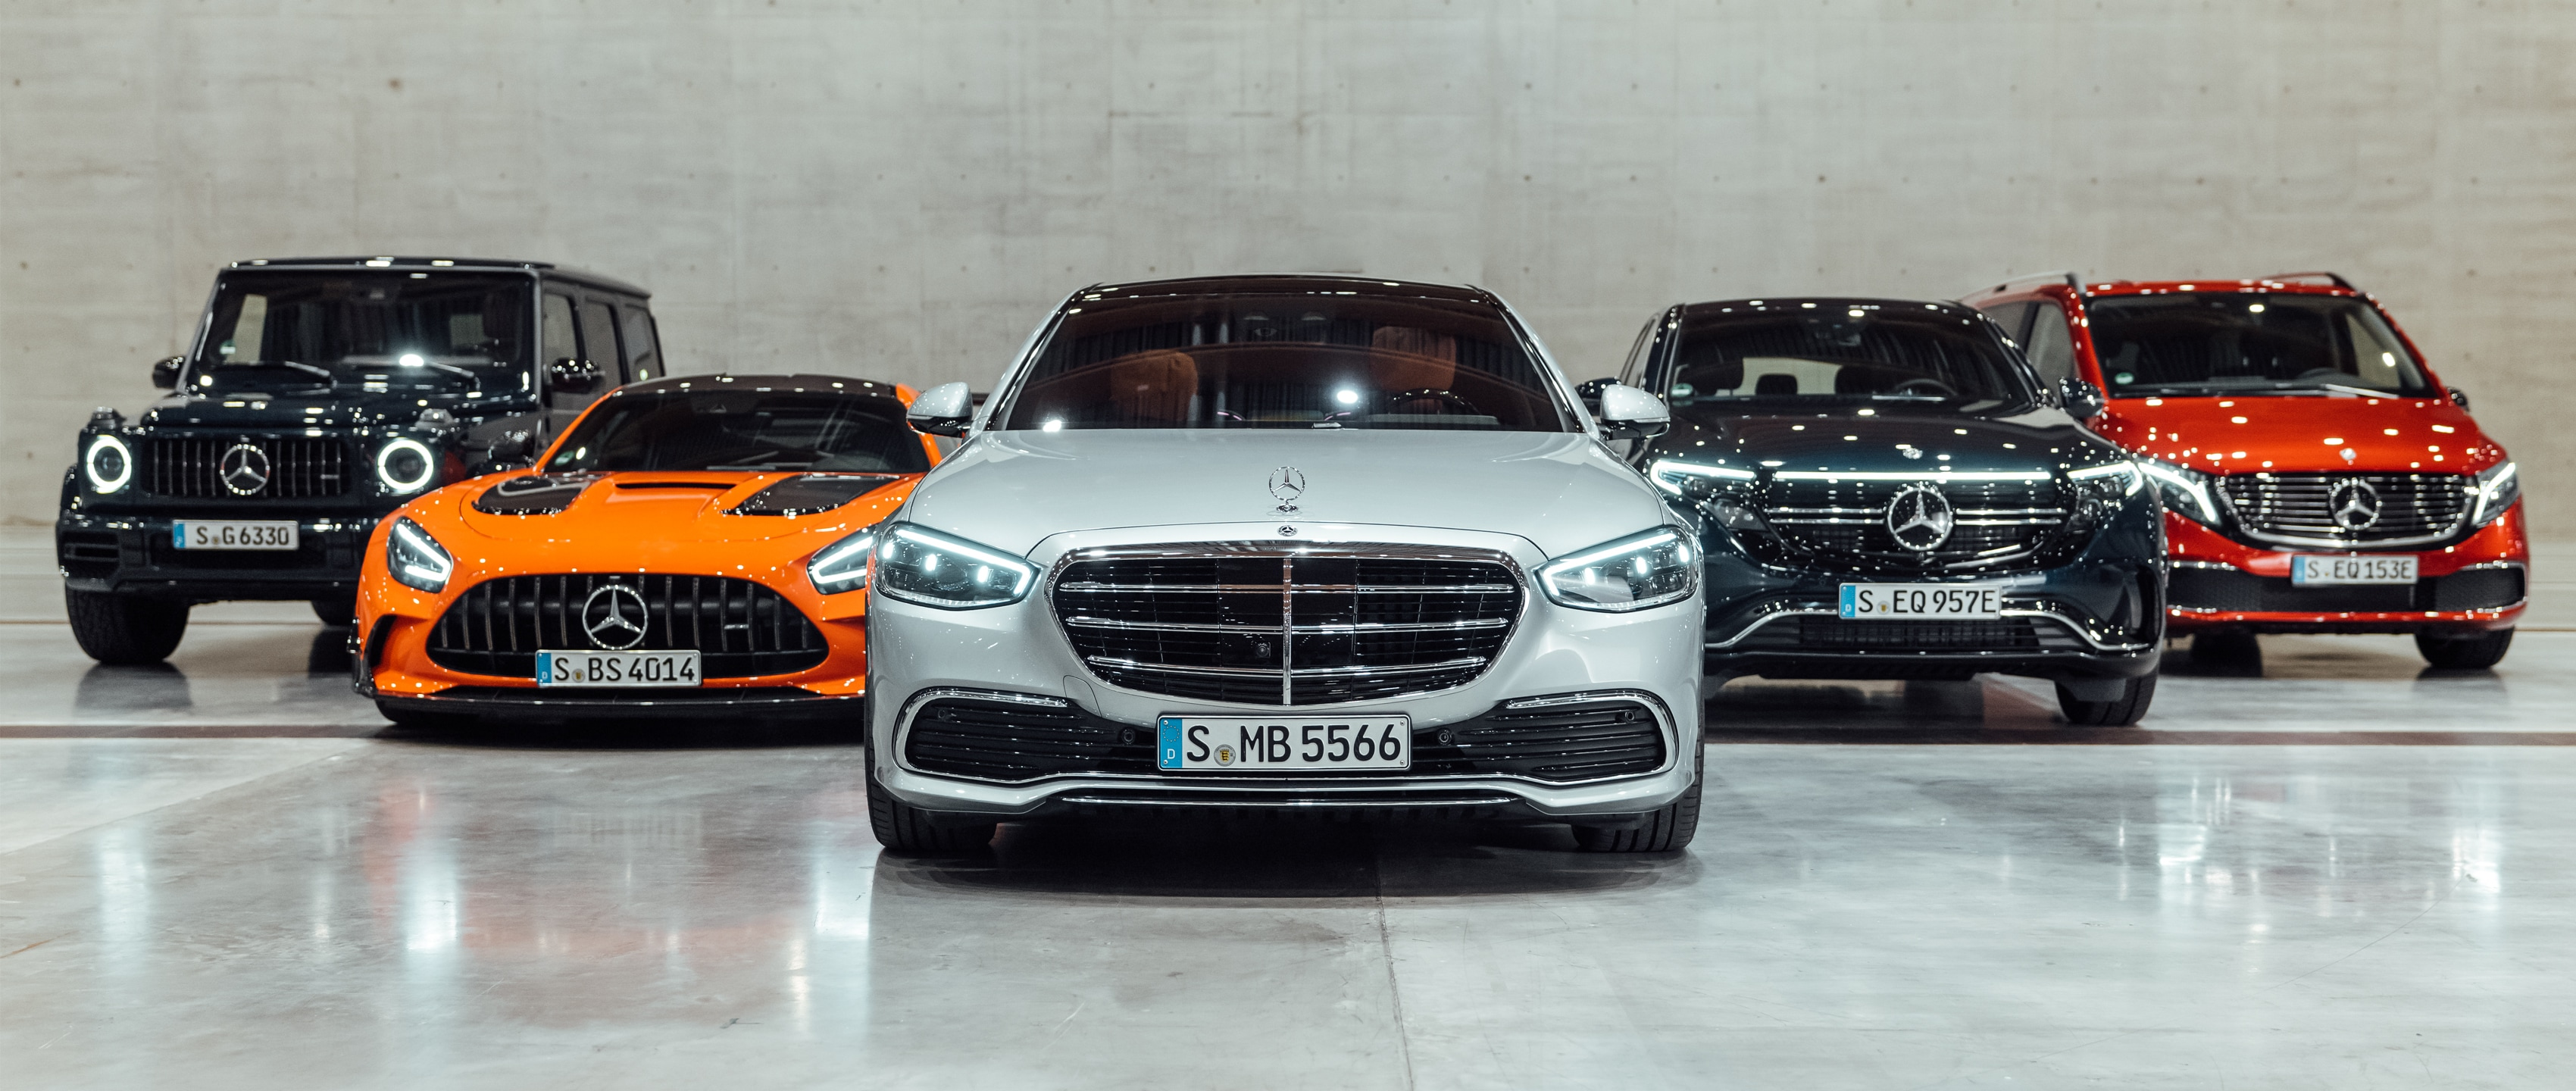 Mercedes-Benz fan facts & sales figures from 2020.